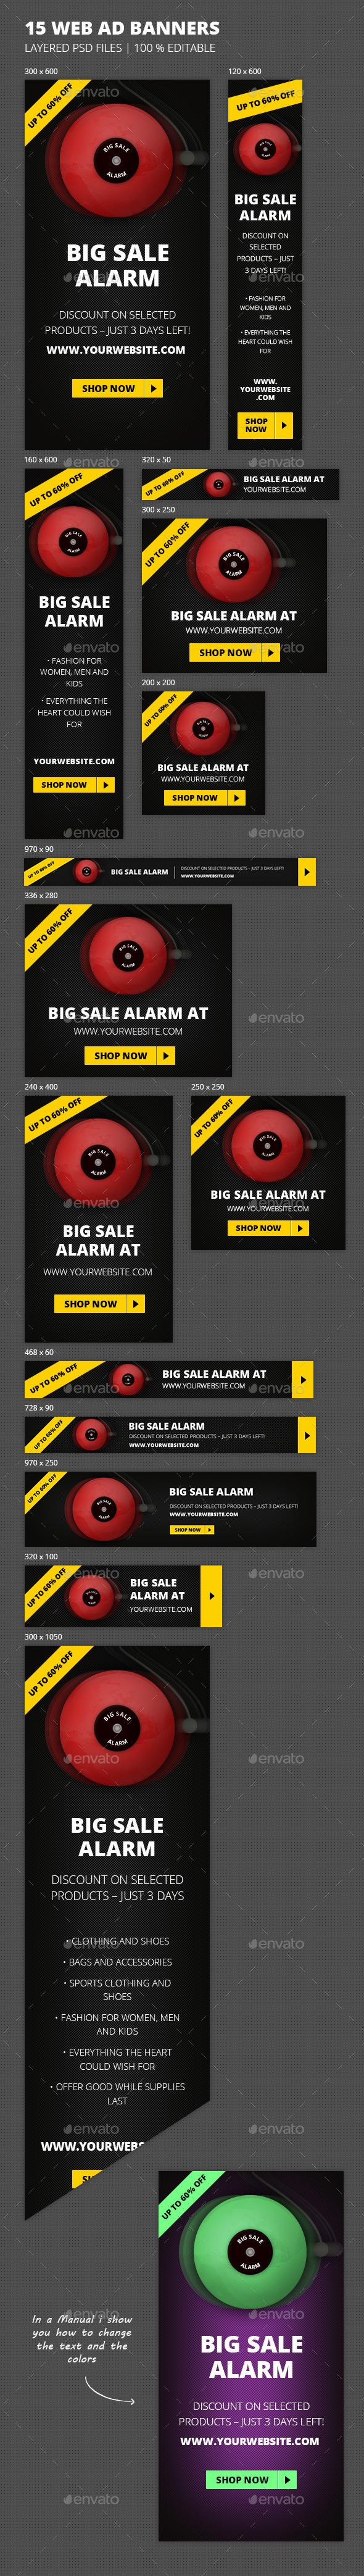 Online Marketing Sale Alarm Web Banners